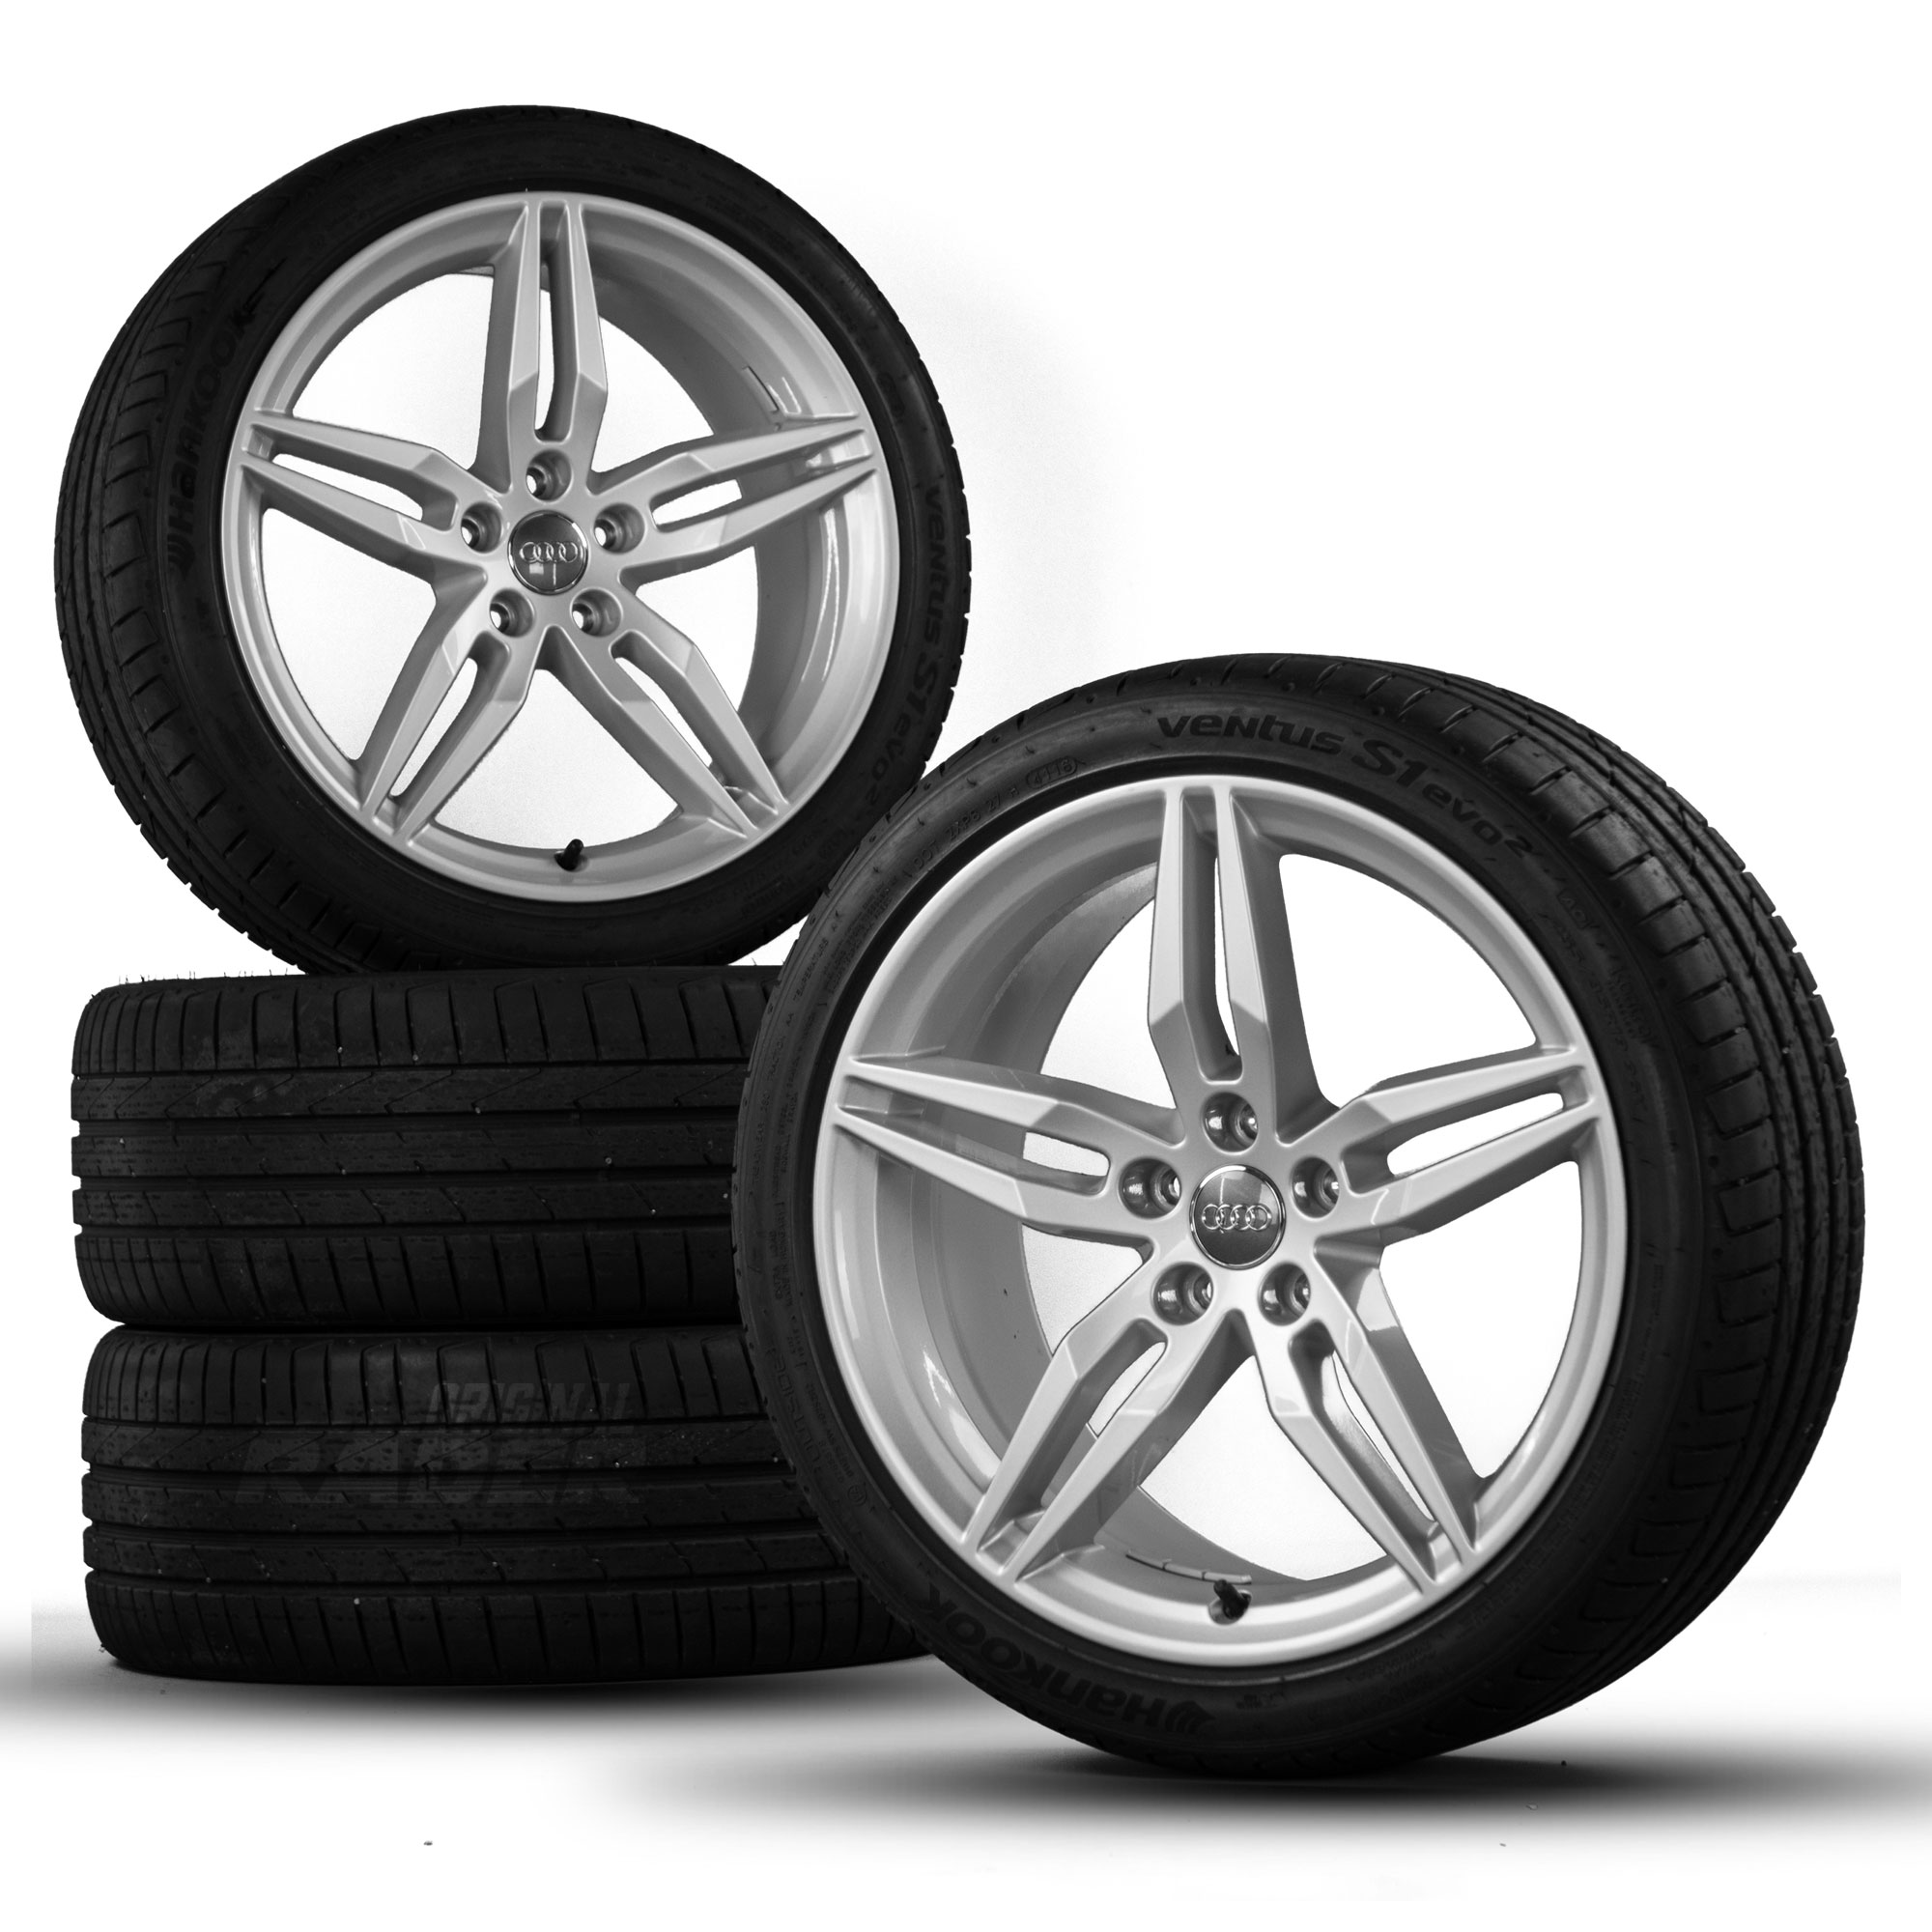 original audi 19 pouces jantes a5 s5 b9 pneus jantes en. Black Bedroom Furniture Sets. Home Design Ideas